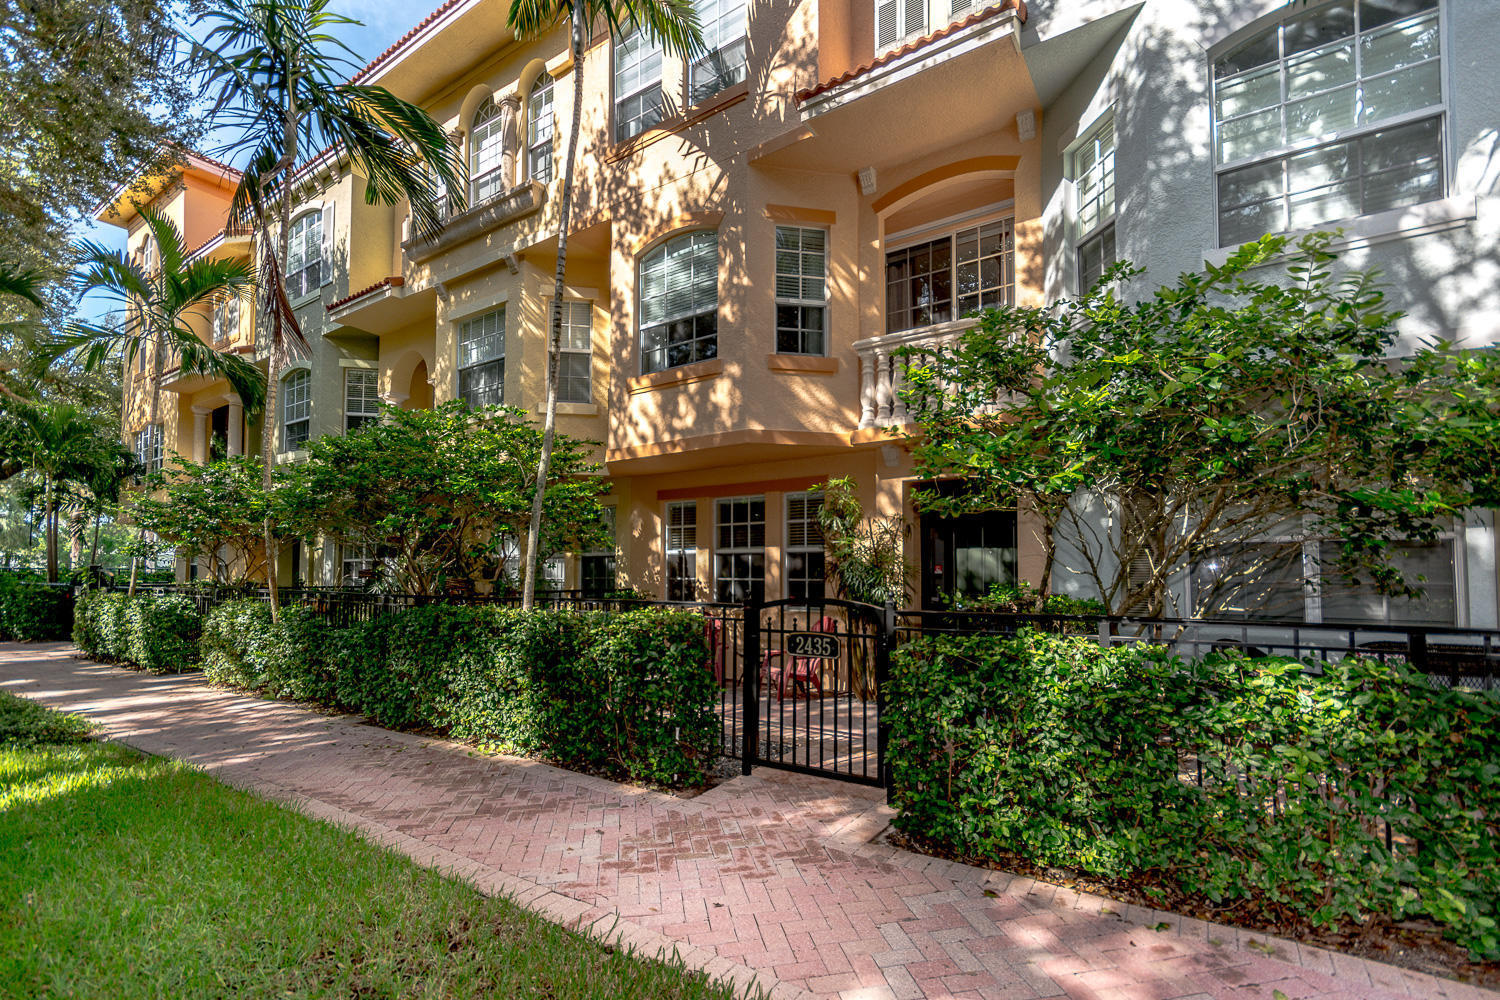 Photo of 2435 San Pietro Circle, Palm Beach Gardens, FL 33410